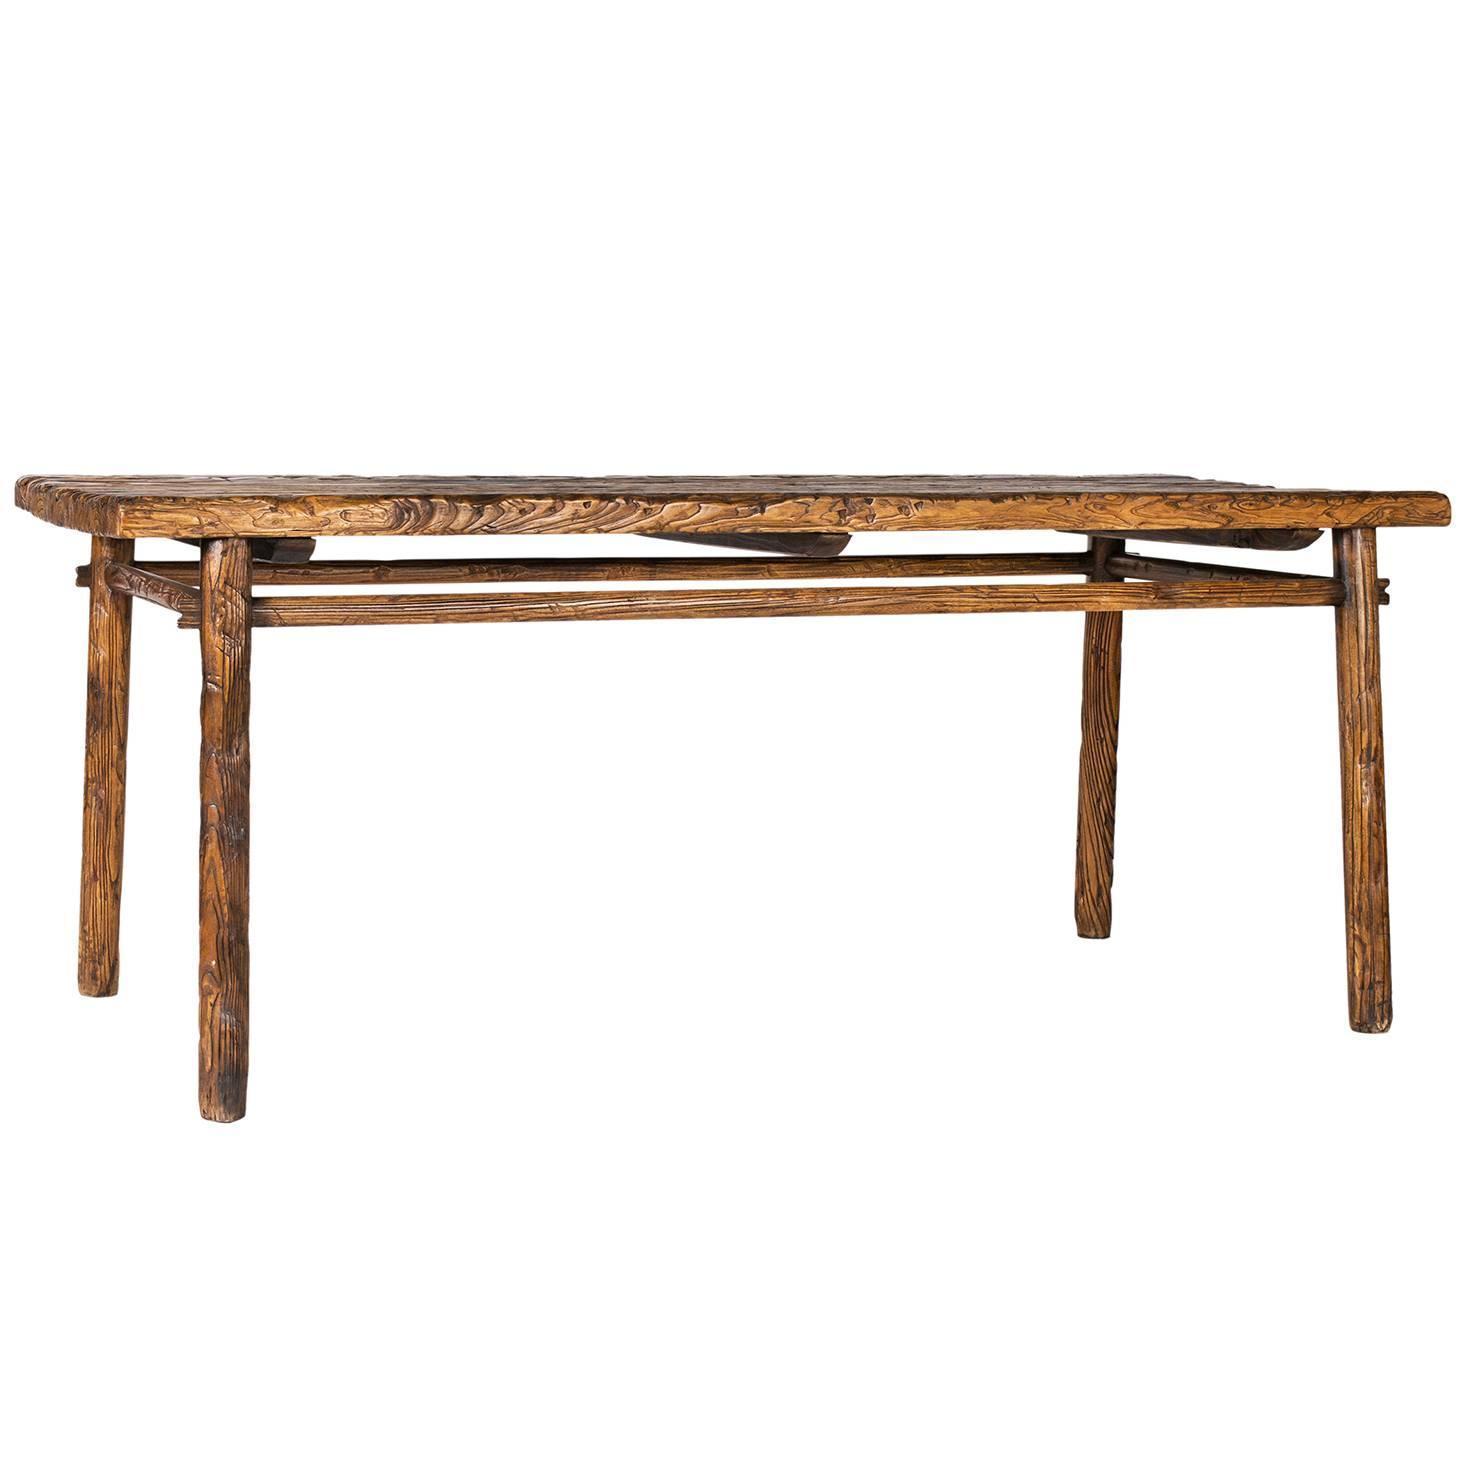 Provincial chinese dining table for sale at 1stdibs for Oriental dining table